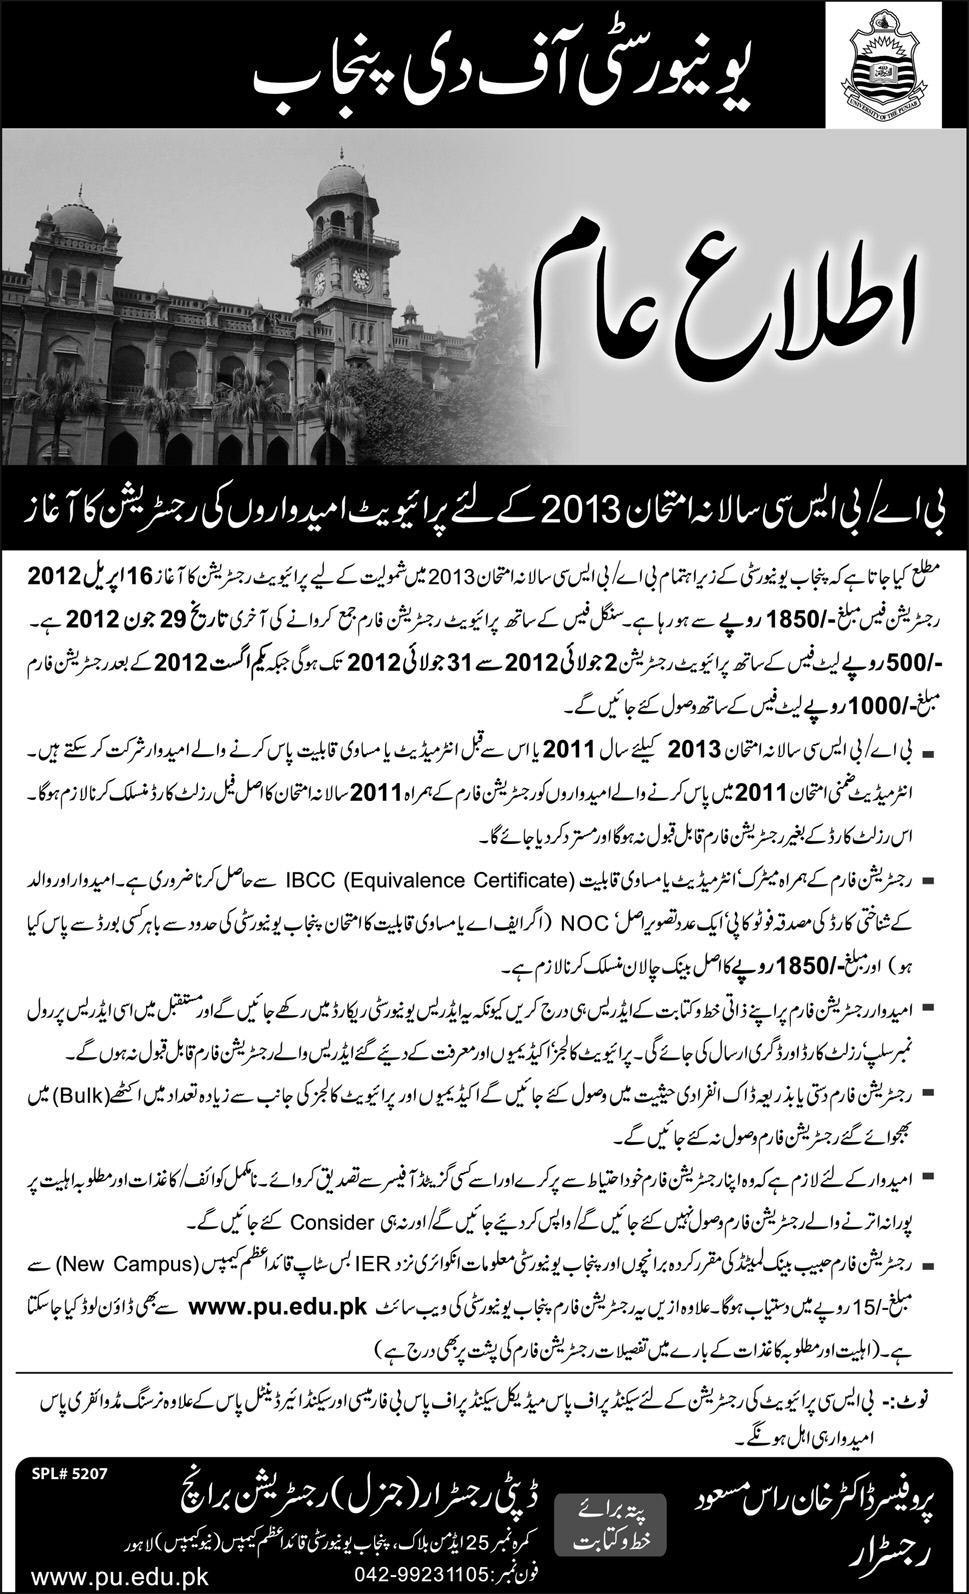 1101502984 1 BA, BSc Admissions, Registrations 2013 in Punjab University